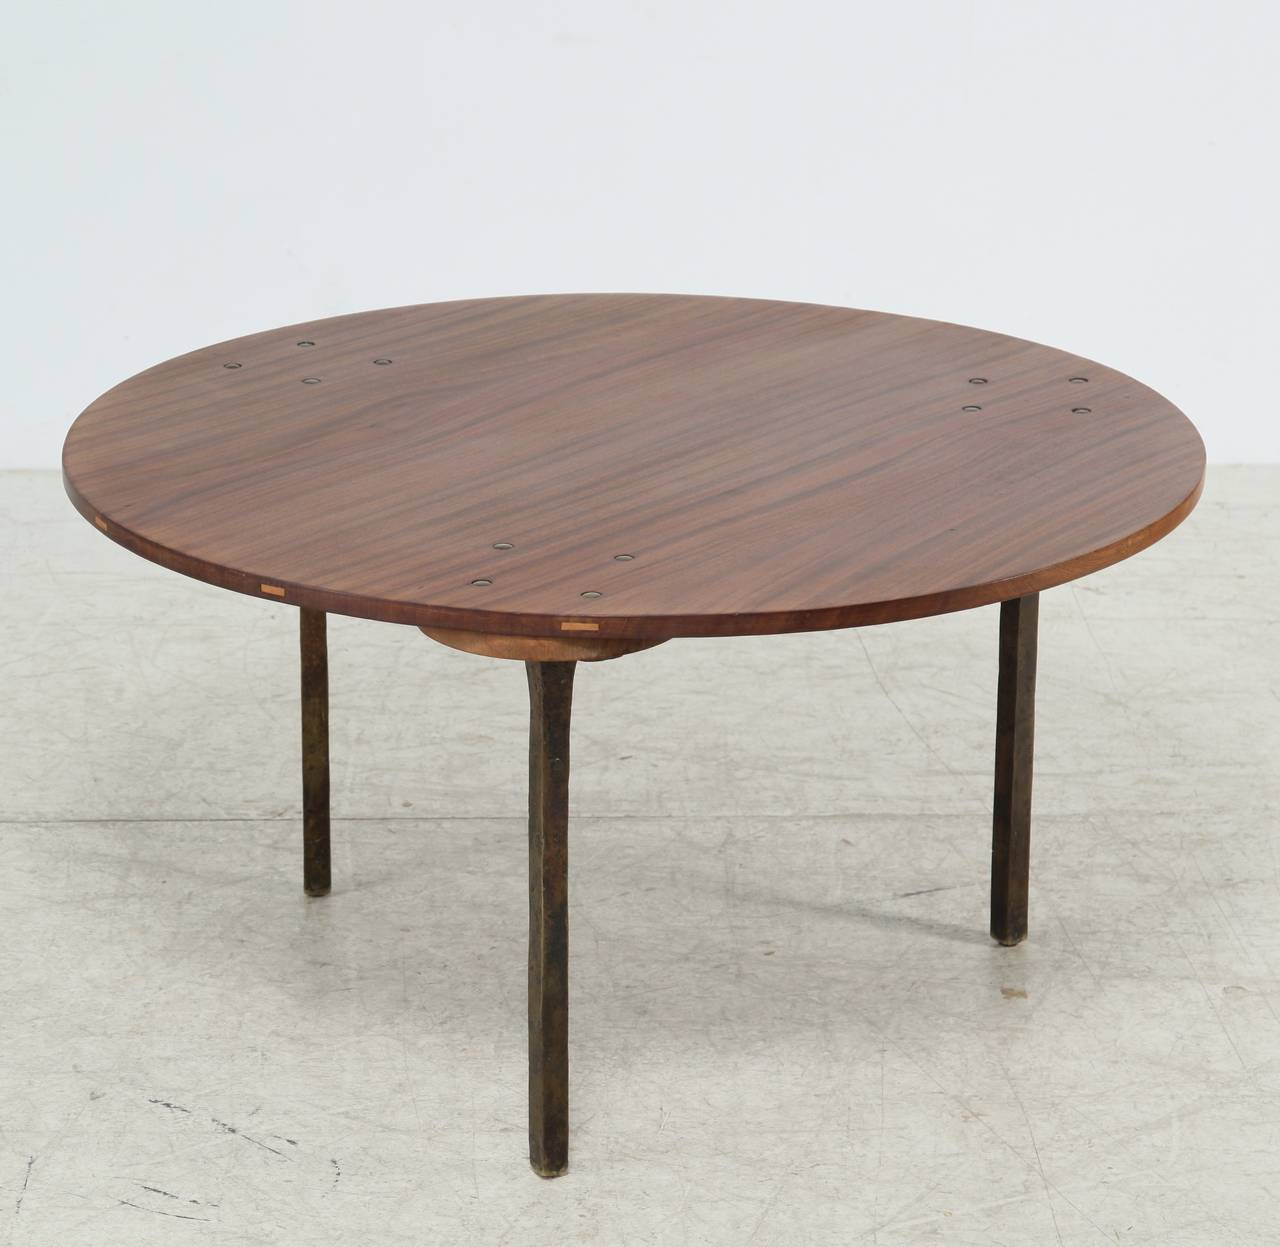 Sculptural Coffee Tables Sculptural Coffee Table By Paul Dierkes With Bronze Legs